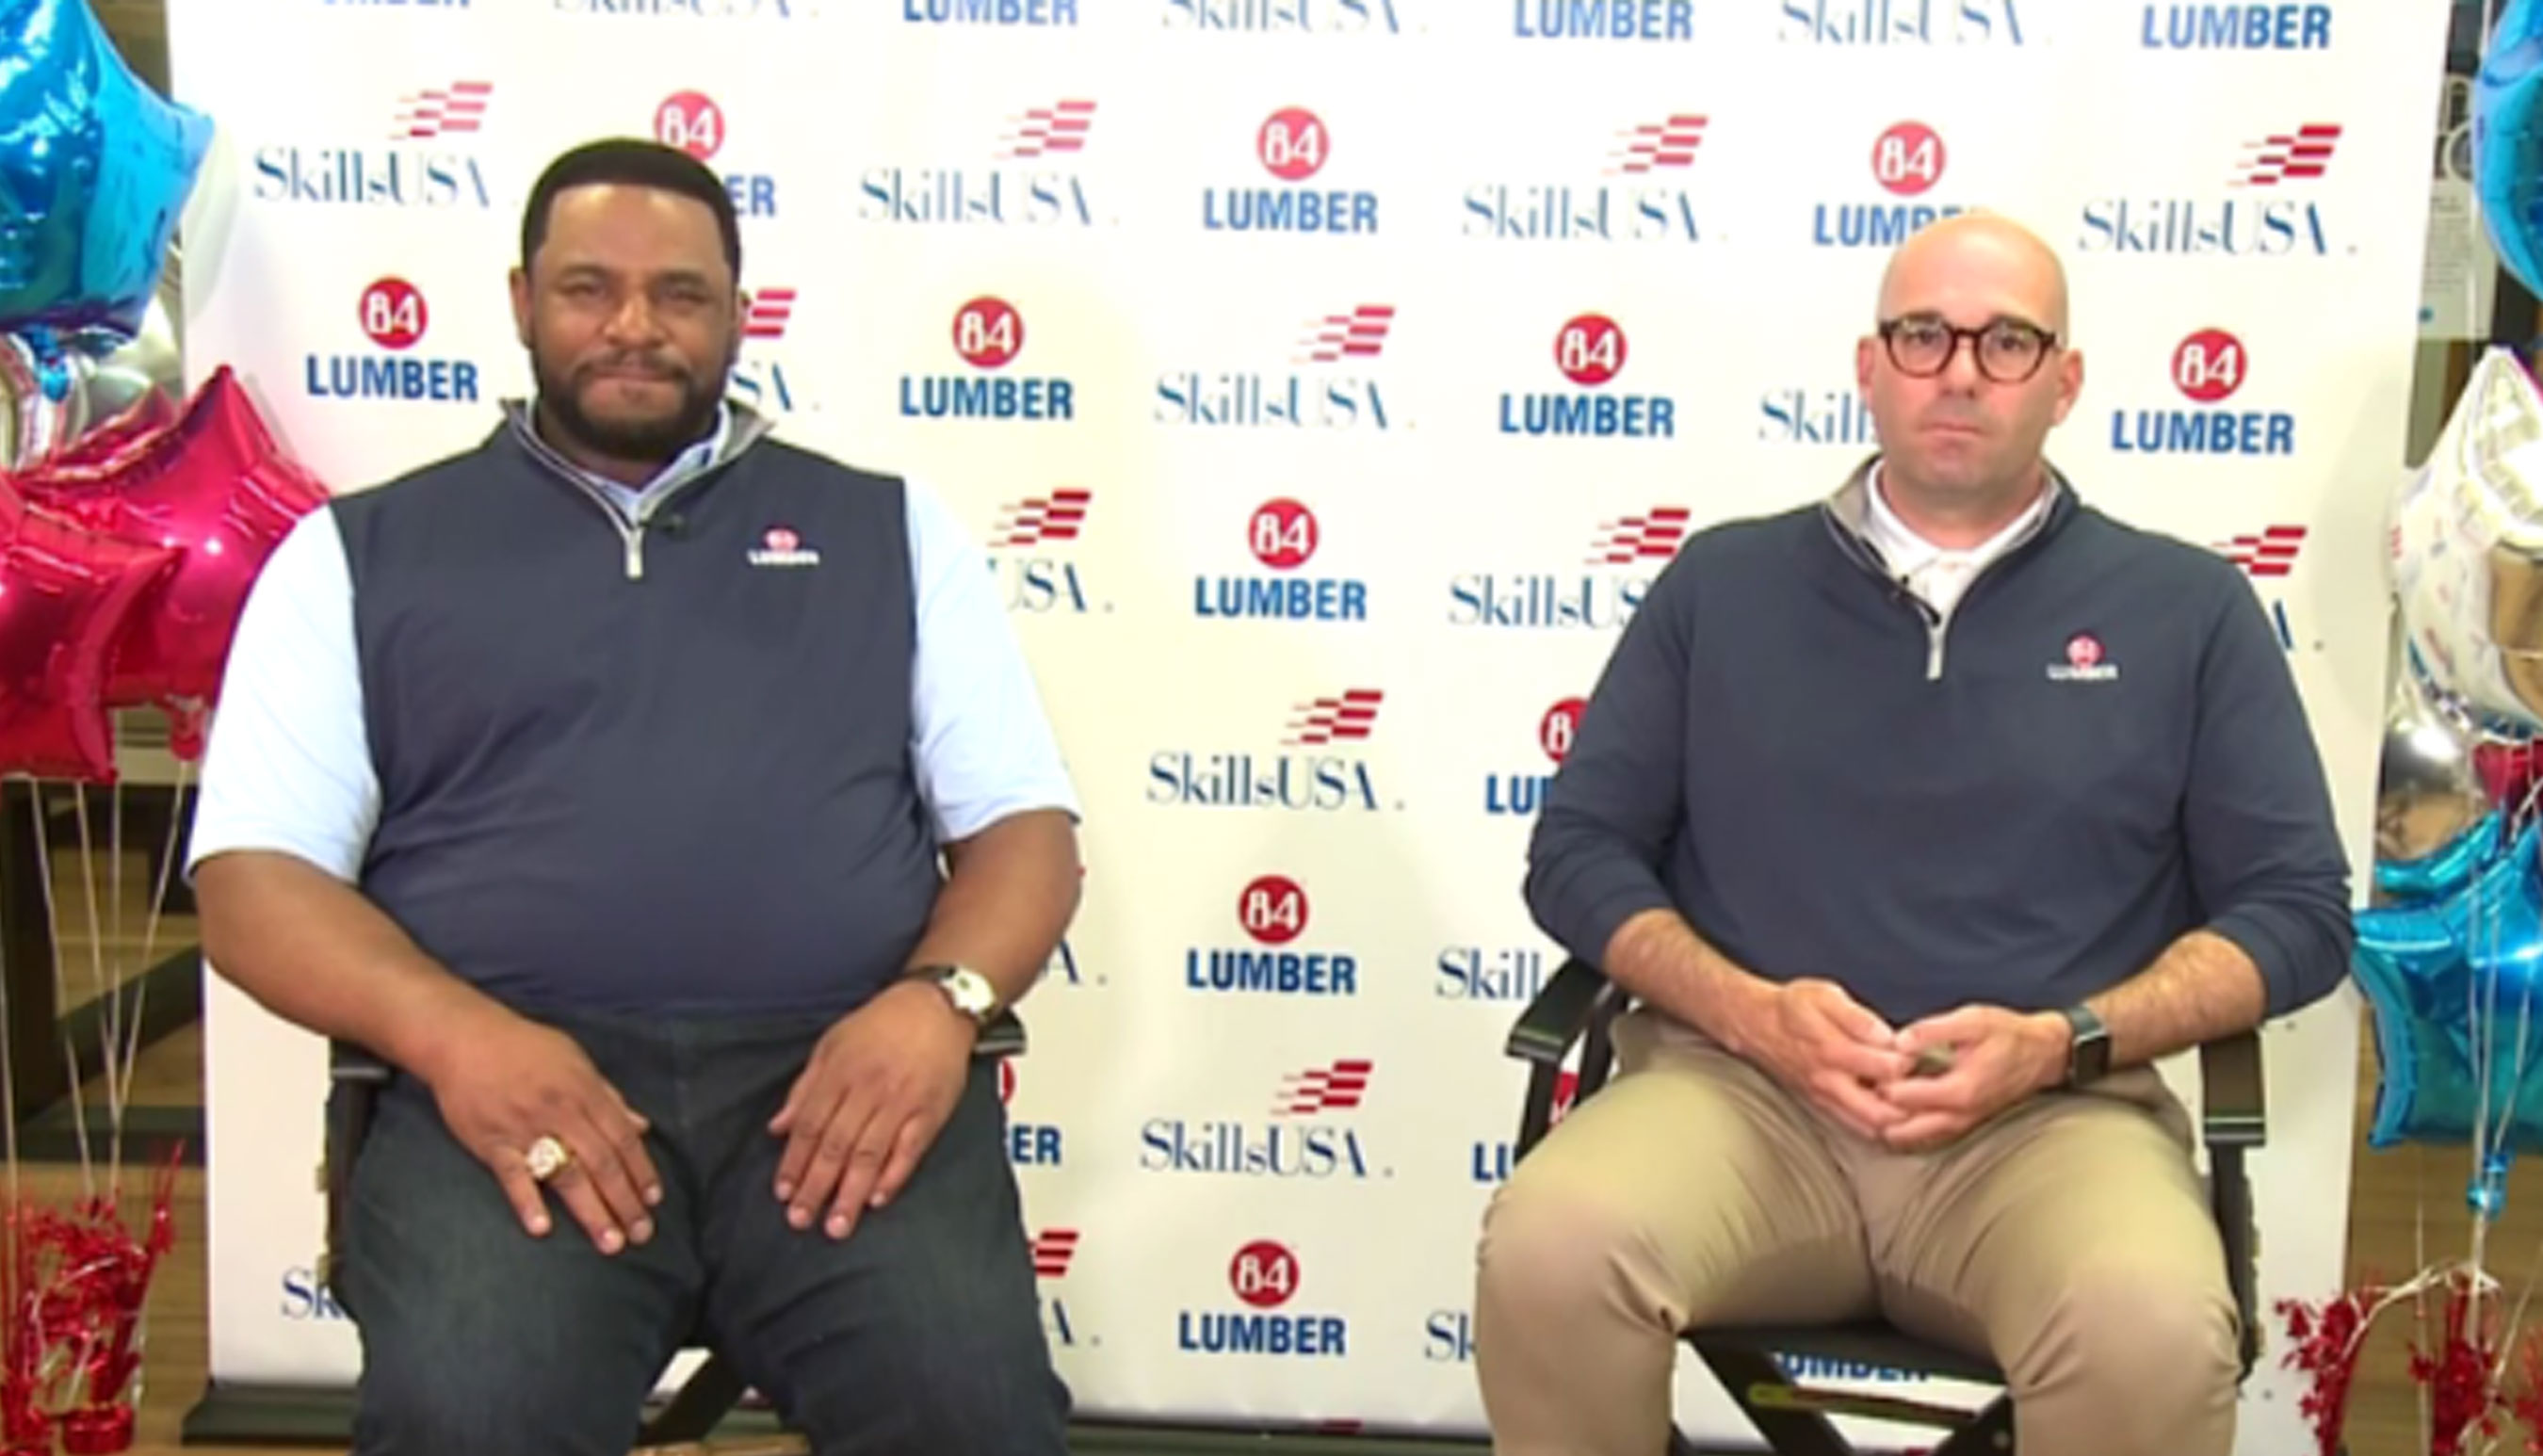 84 Lumber and NFL Great Jerome Bettis Recognize High School Seniors Committing to Skilled Trades during SkillsUSA National Signing Day